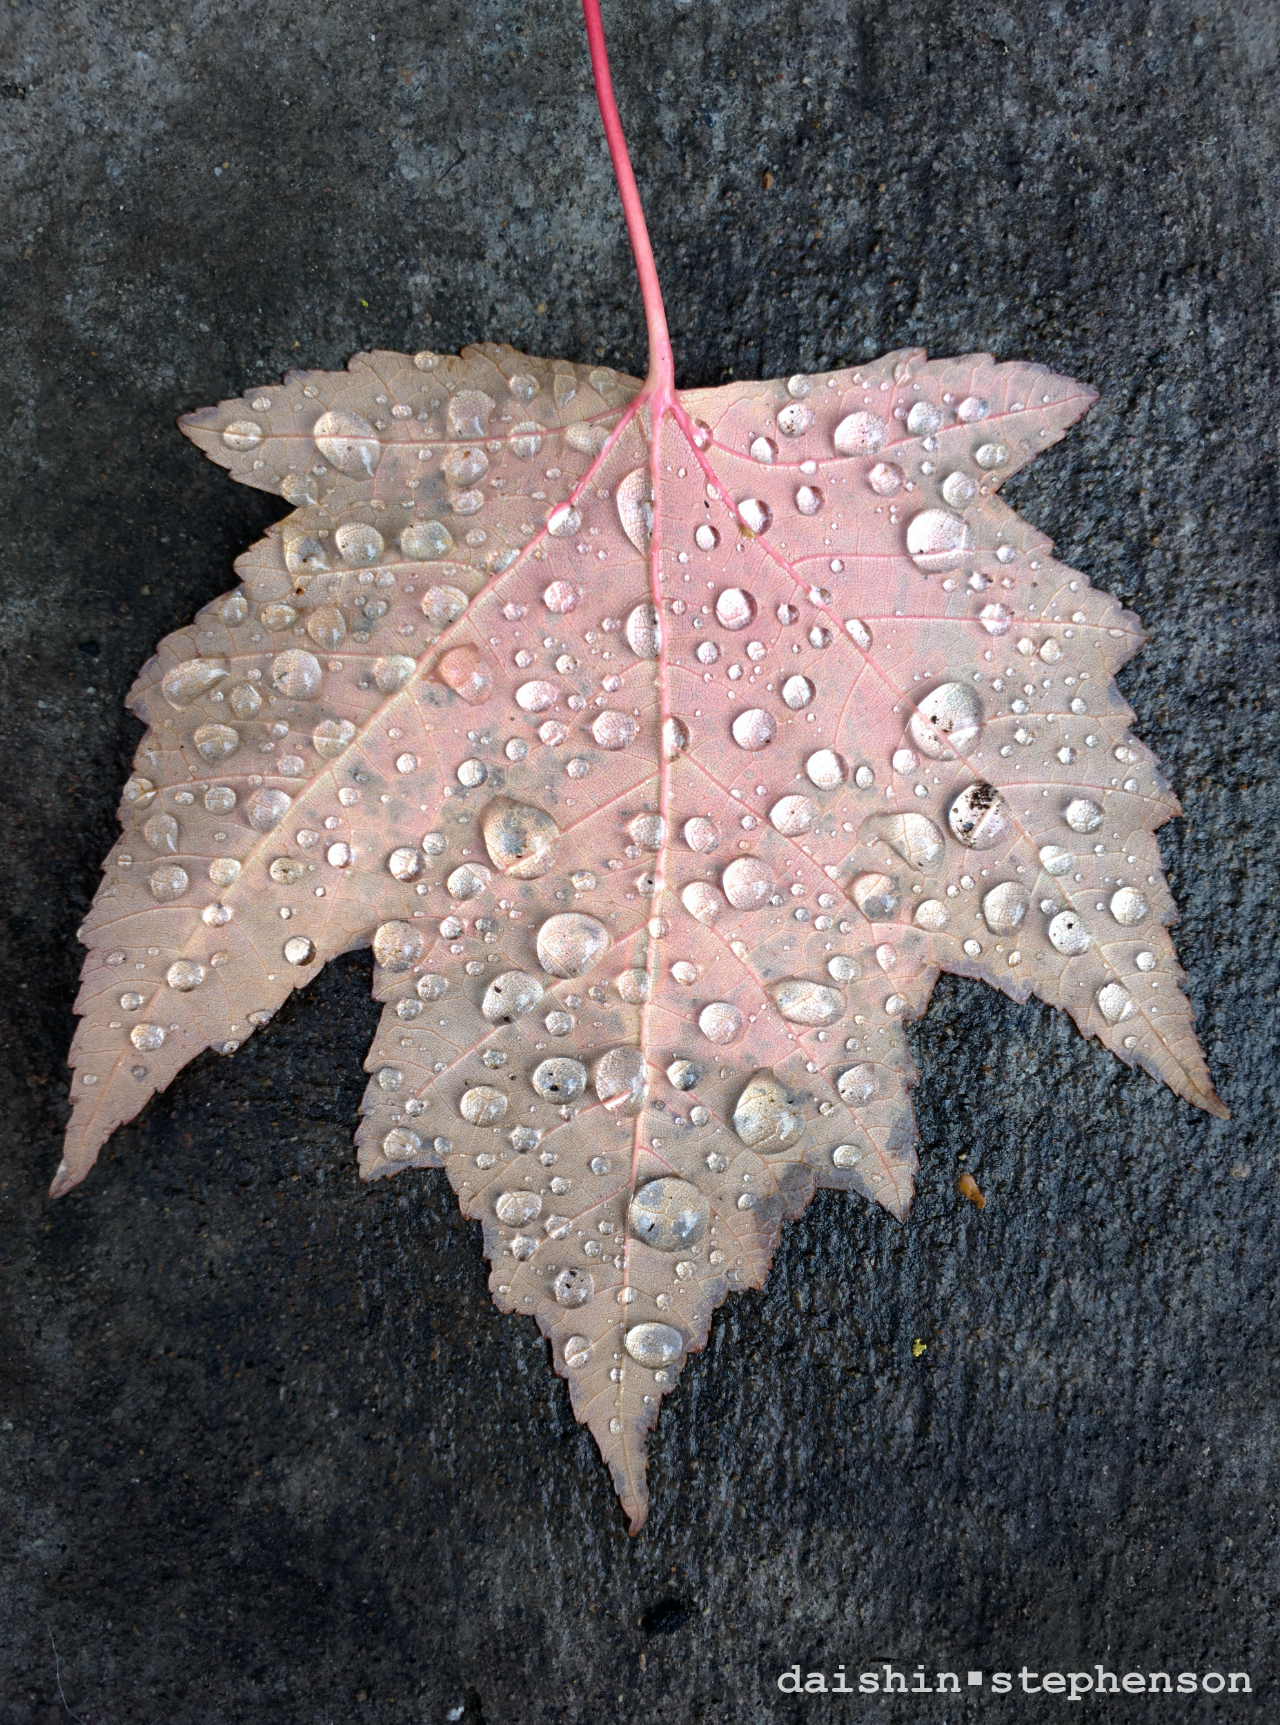 leaf on sidewalk covered with raindrops